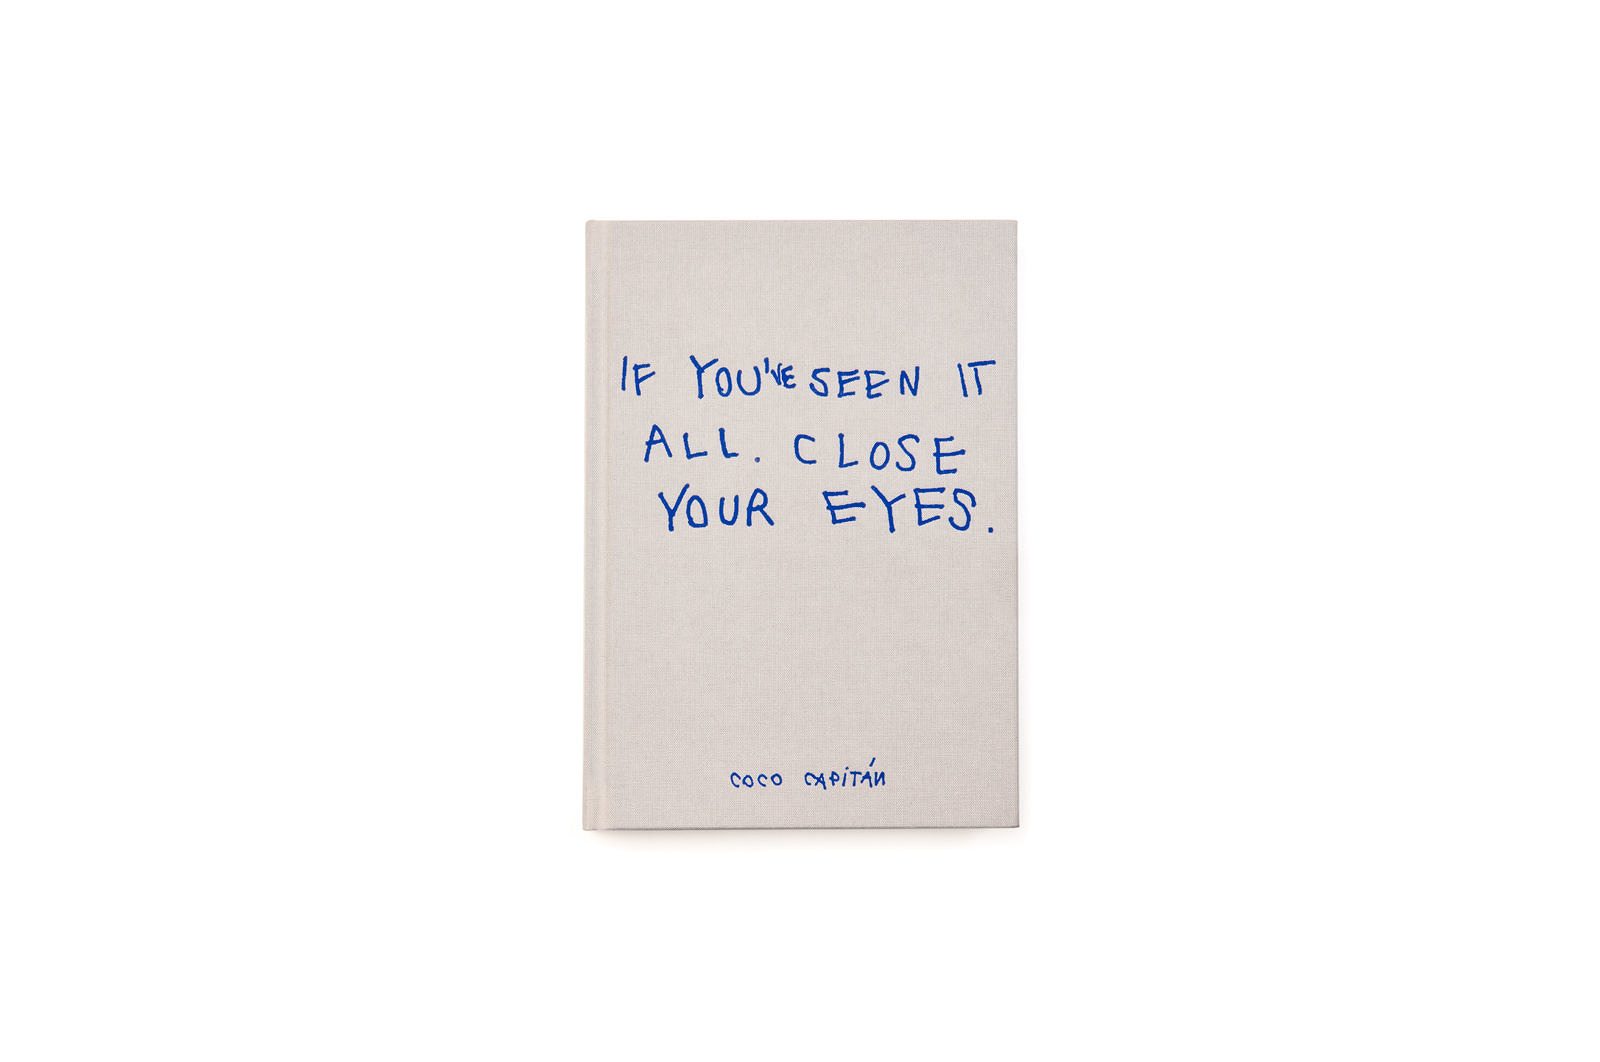 If you've seen it all close your eyes - First edition